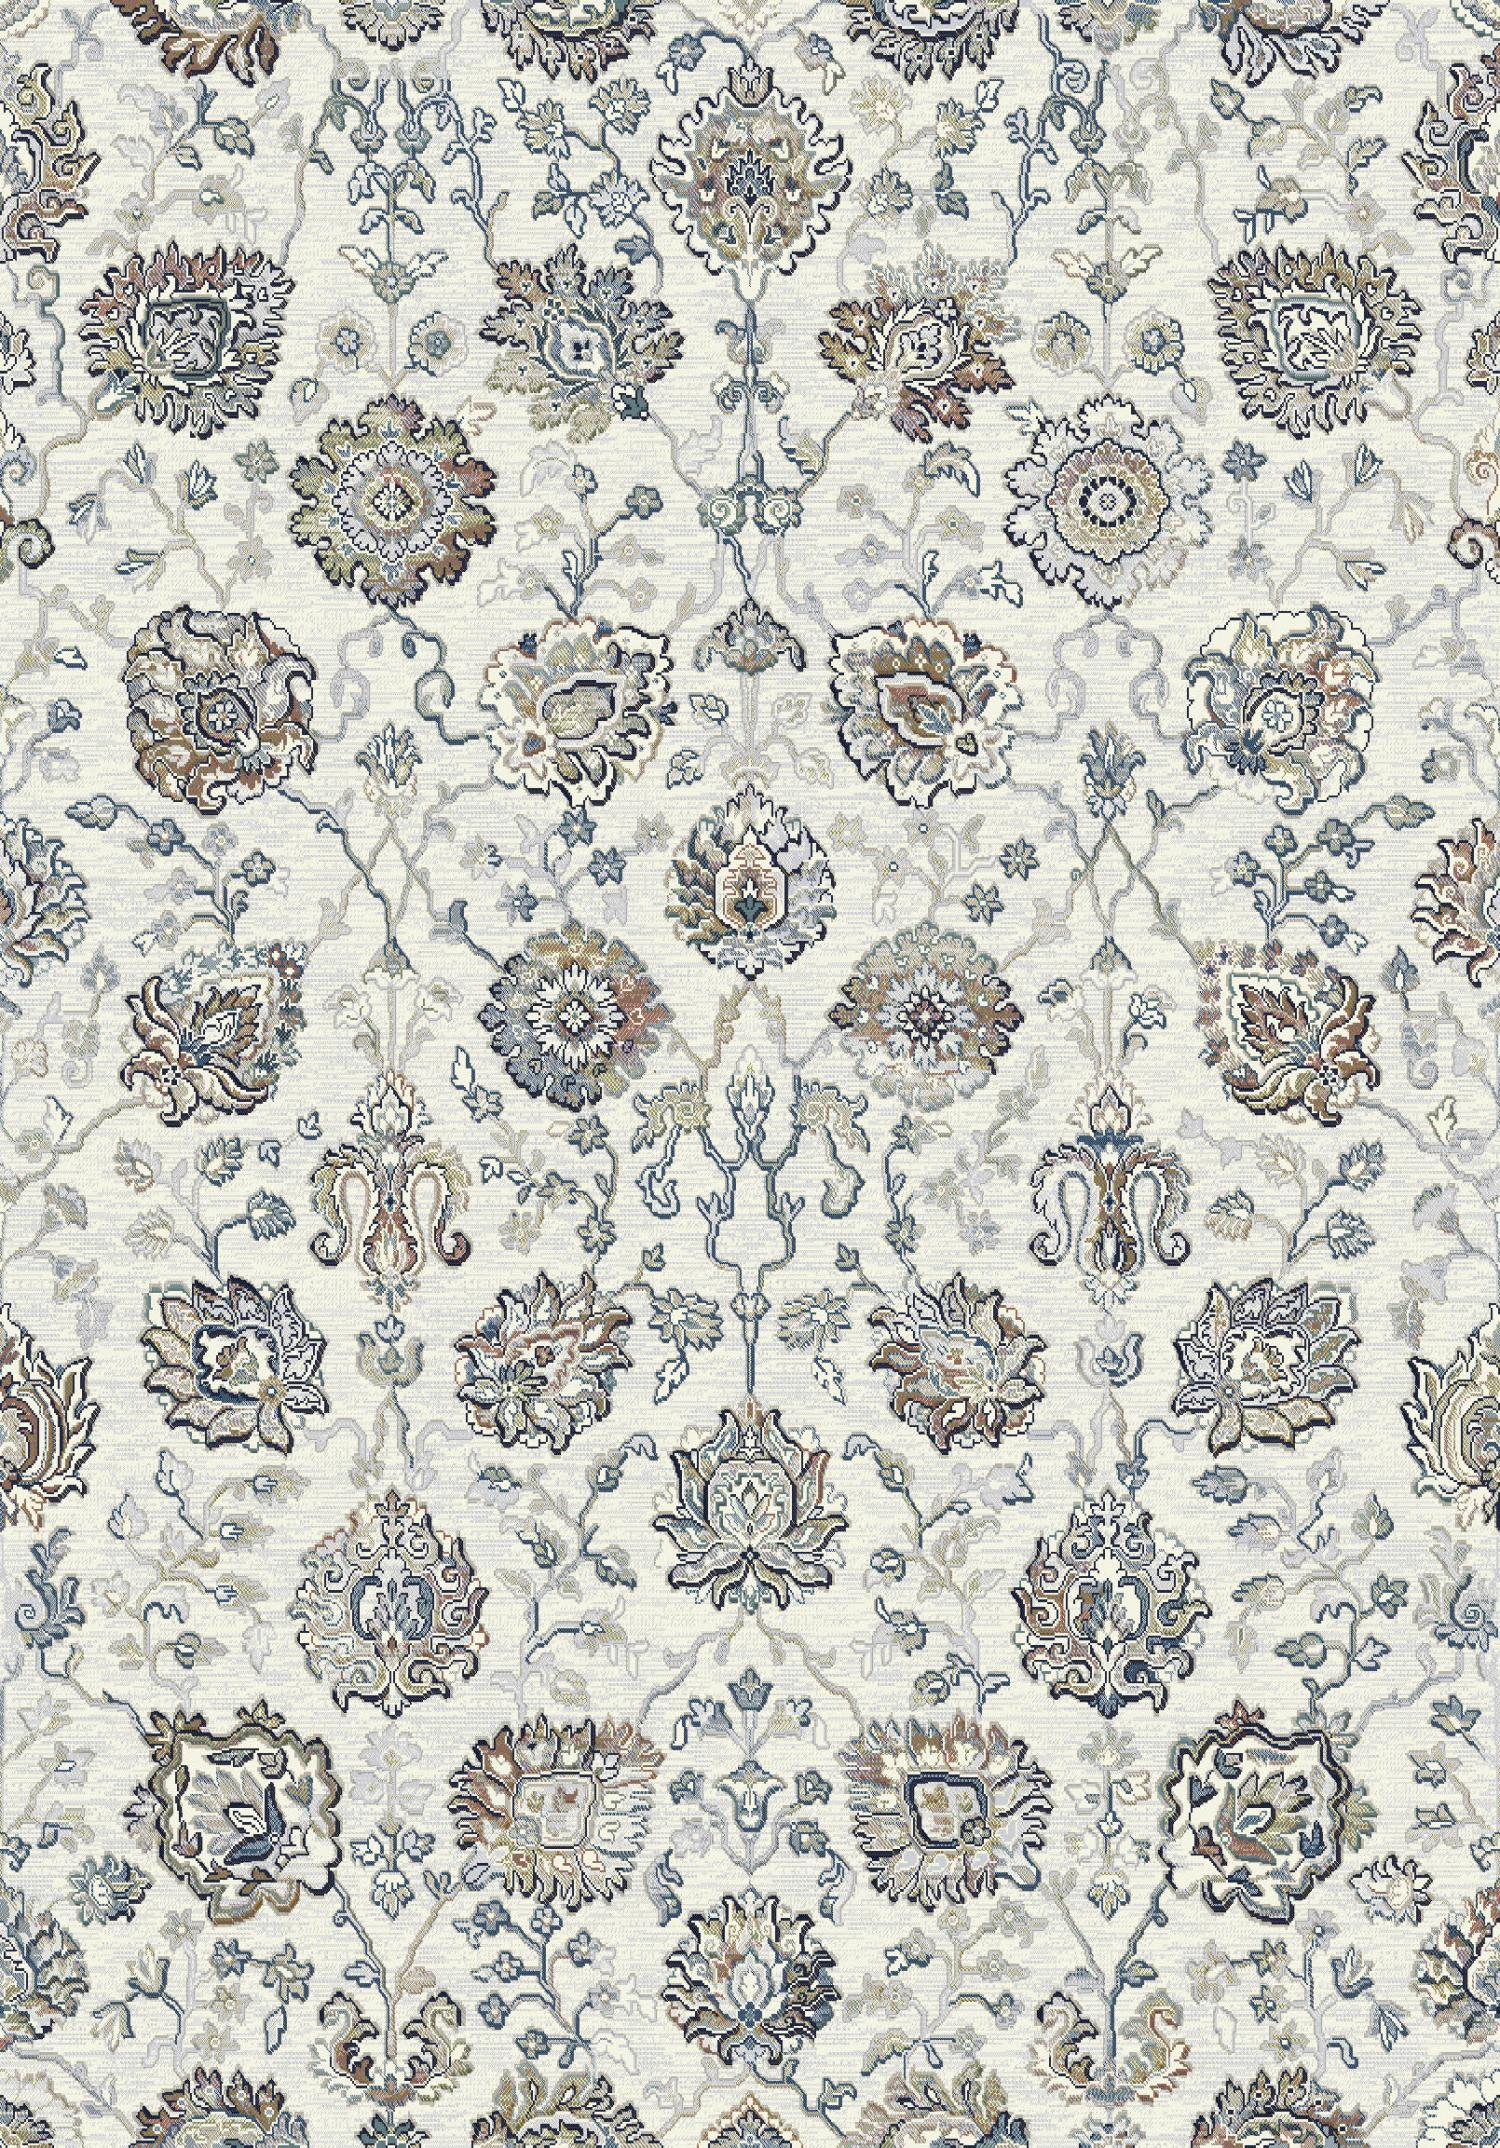 zenith-rugs-perth-stans-modern-transitional